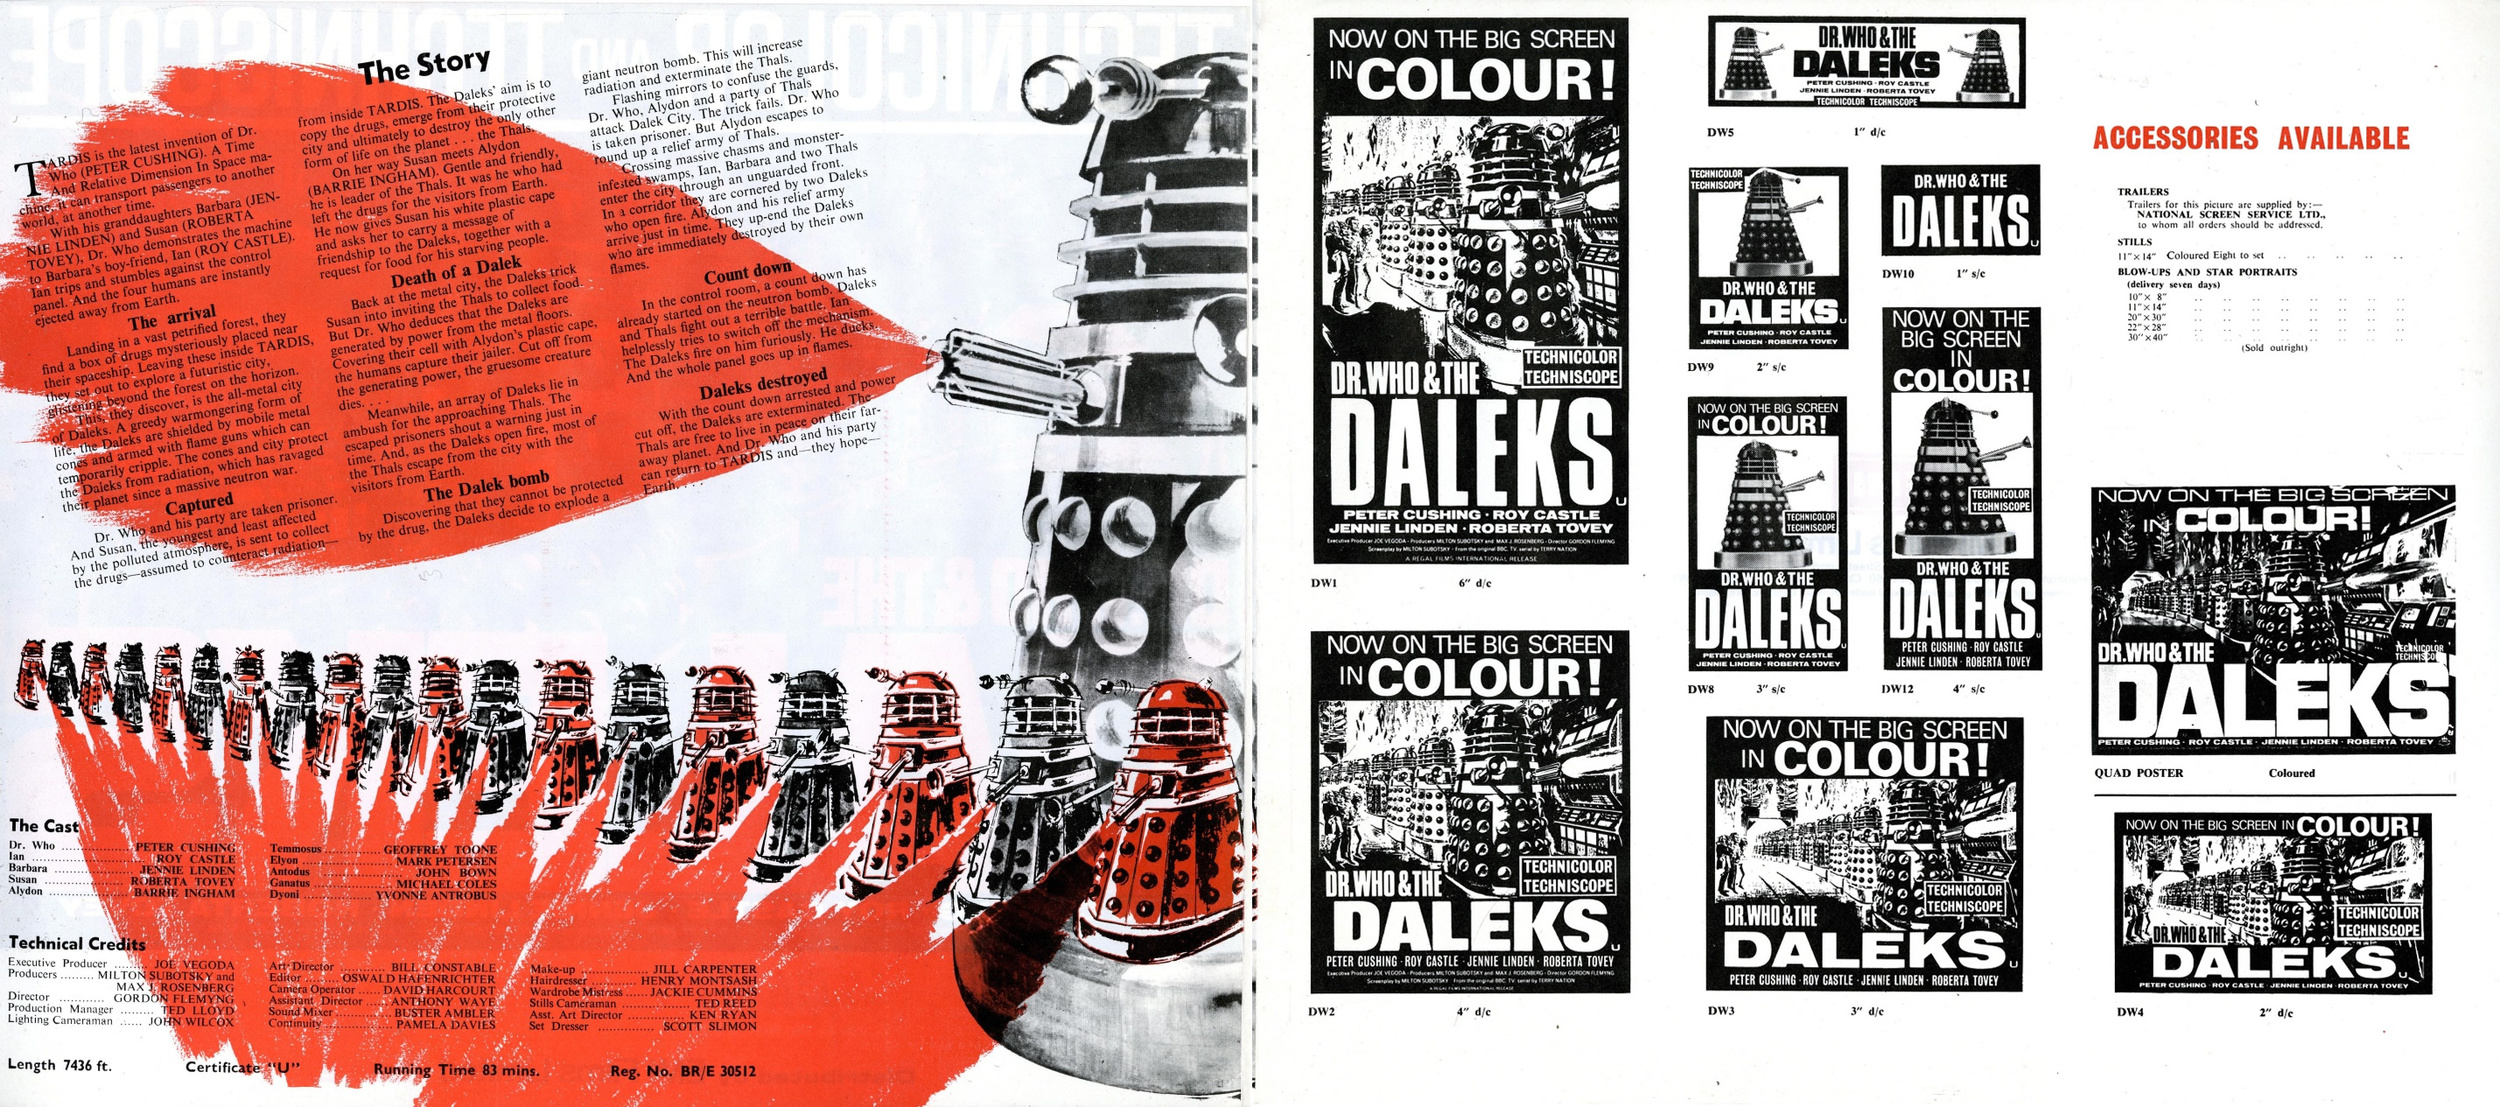 Dr. Who and the Daleks, EMI Films Ltd., Campaign Book (interior pages)